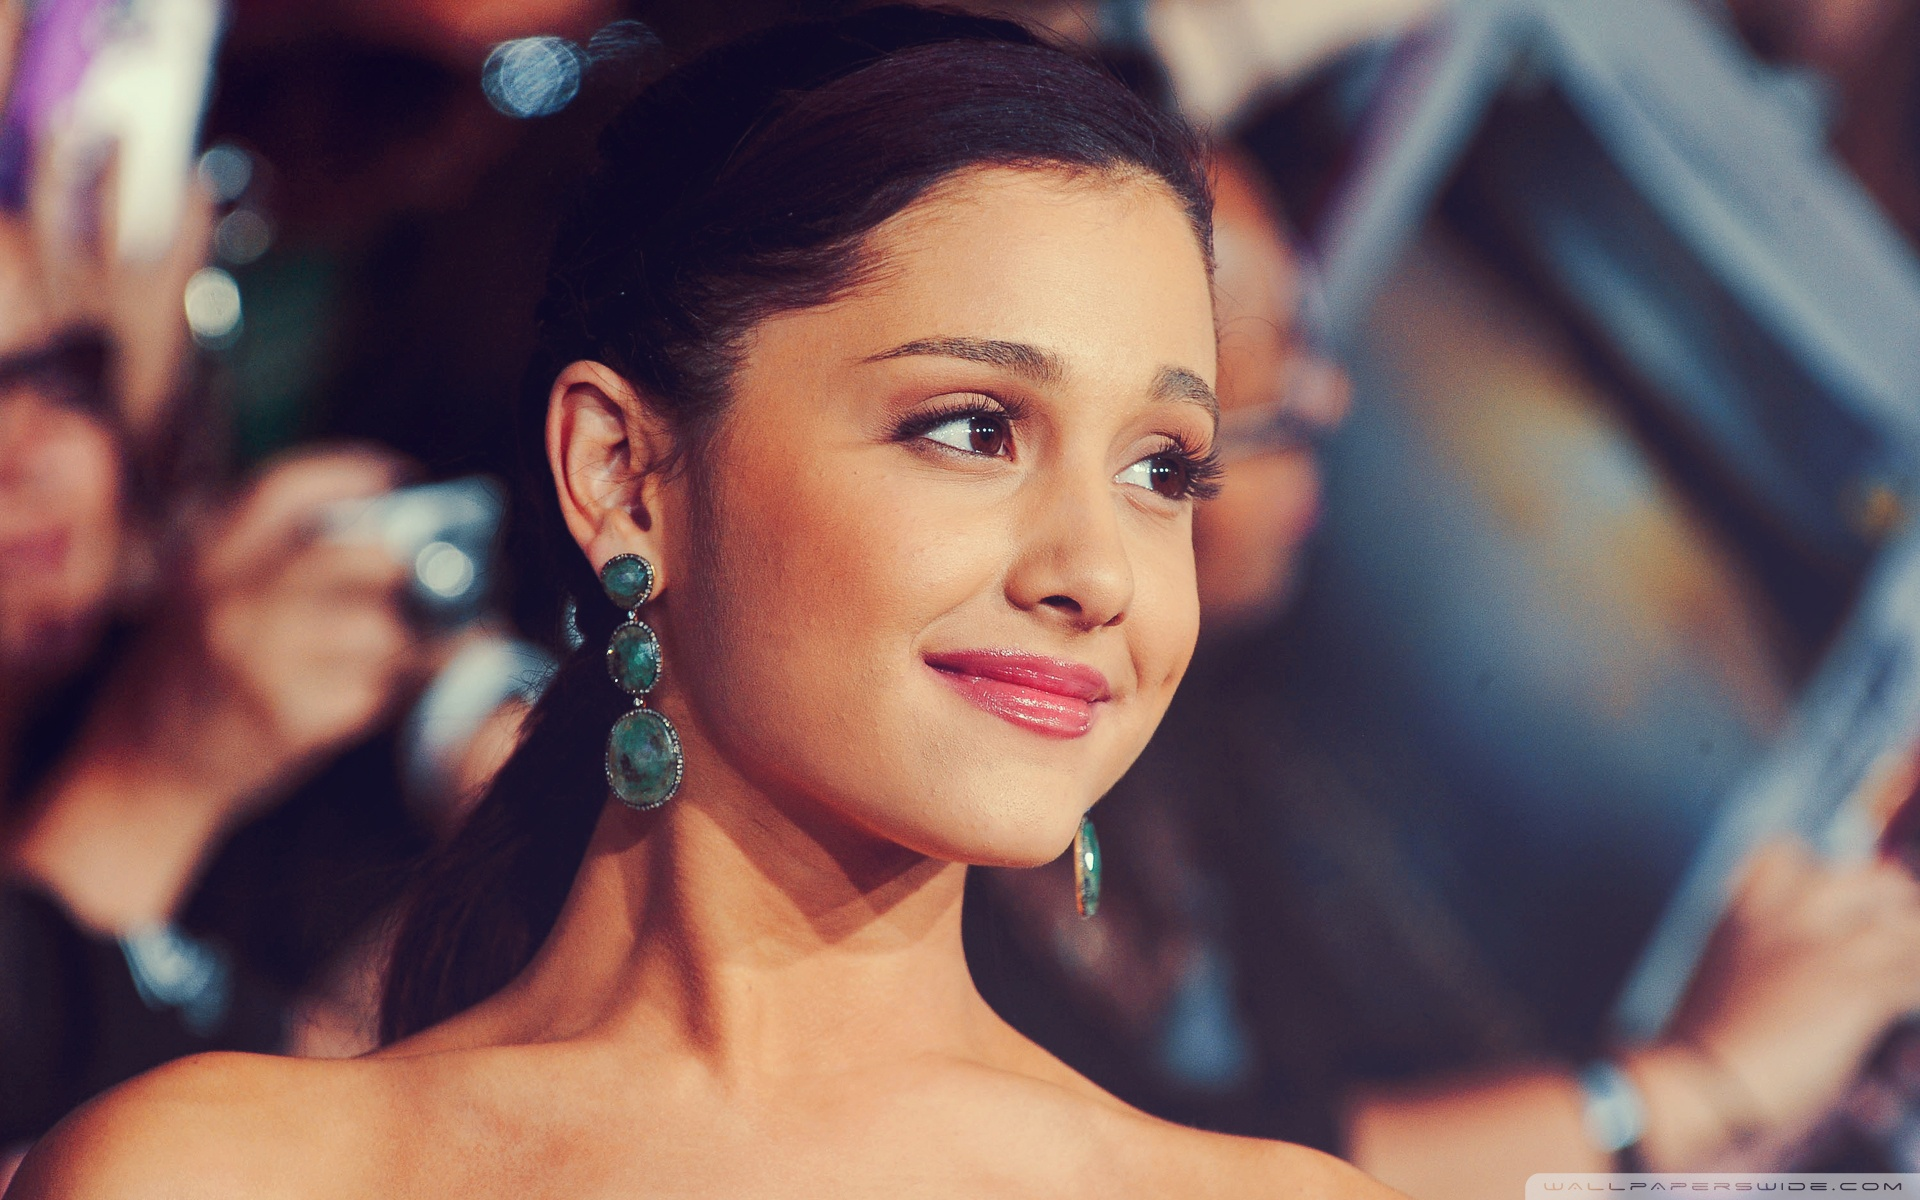 ariana grande images awsome ariana hd fond d'écran and background